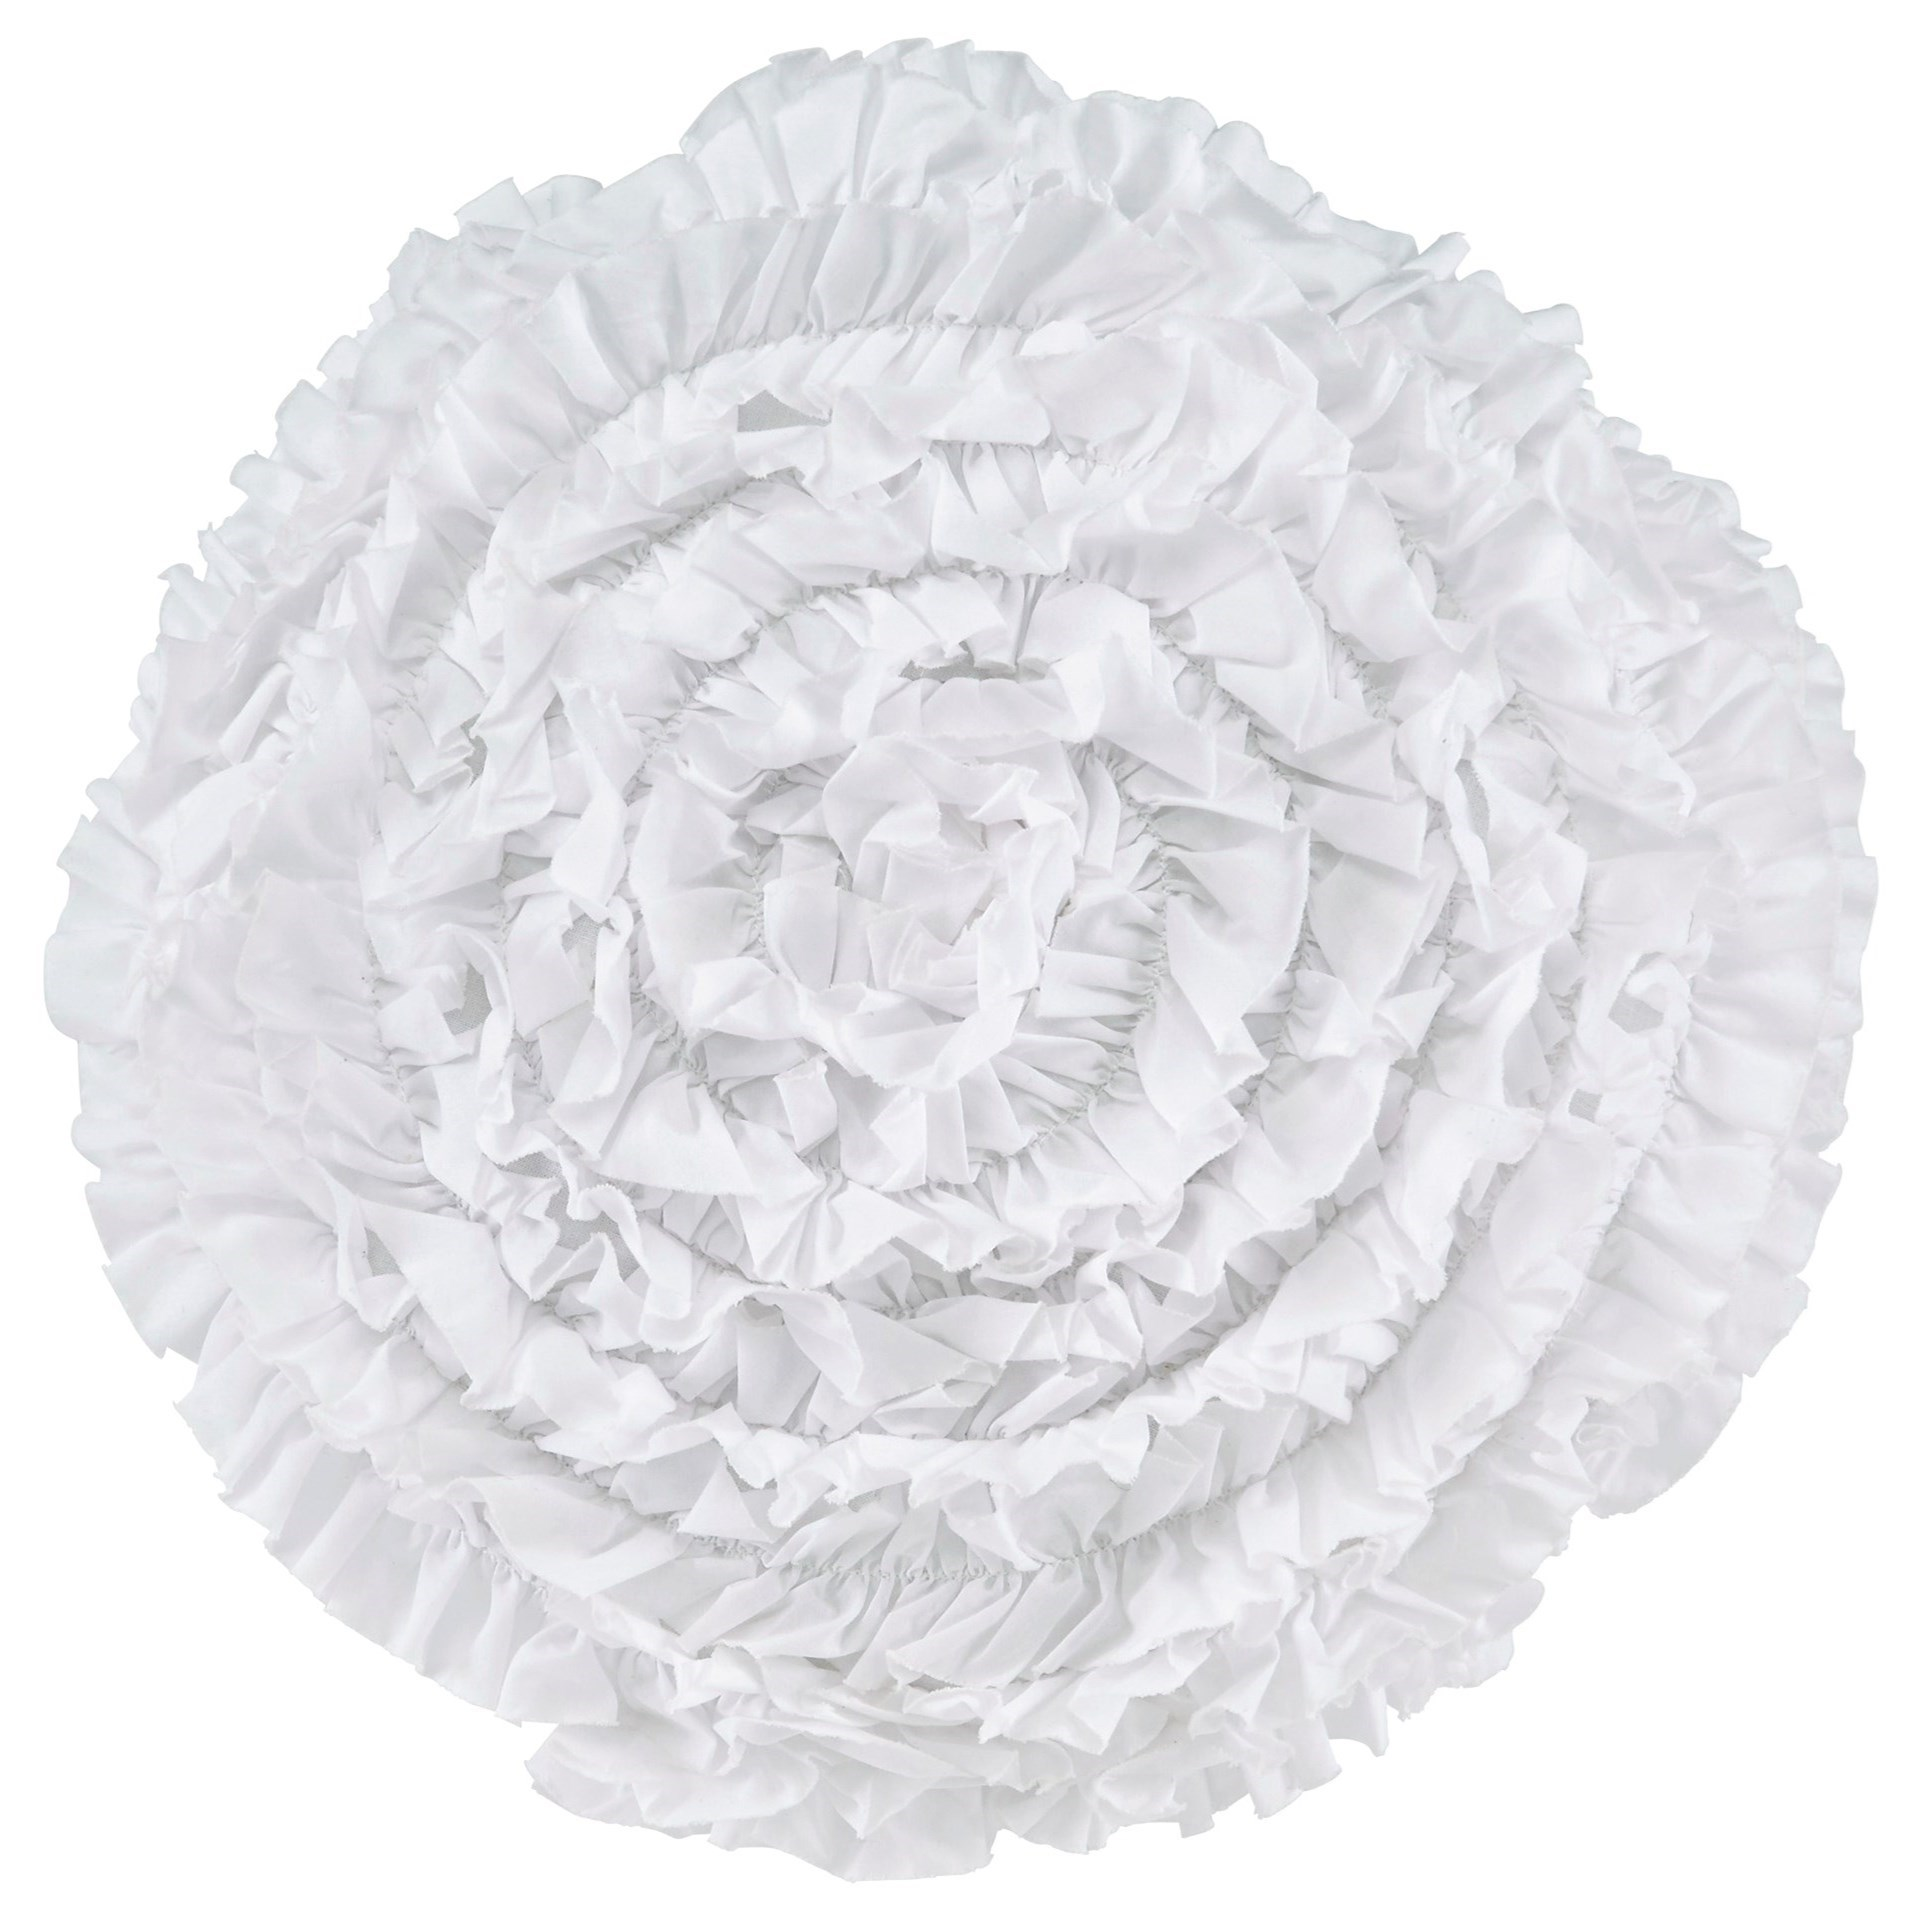 Signature Design by Ashley Pillows Bloompier - White Pillow - Item Number: A1000636P